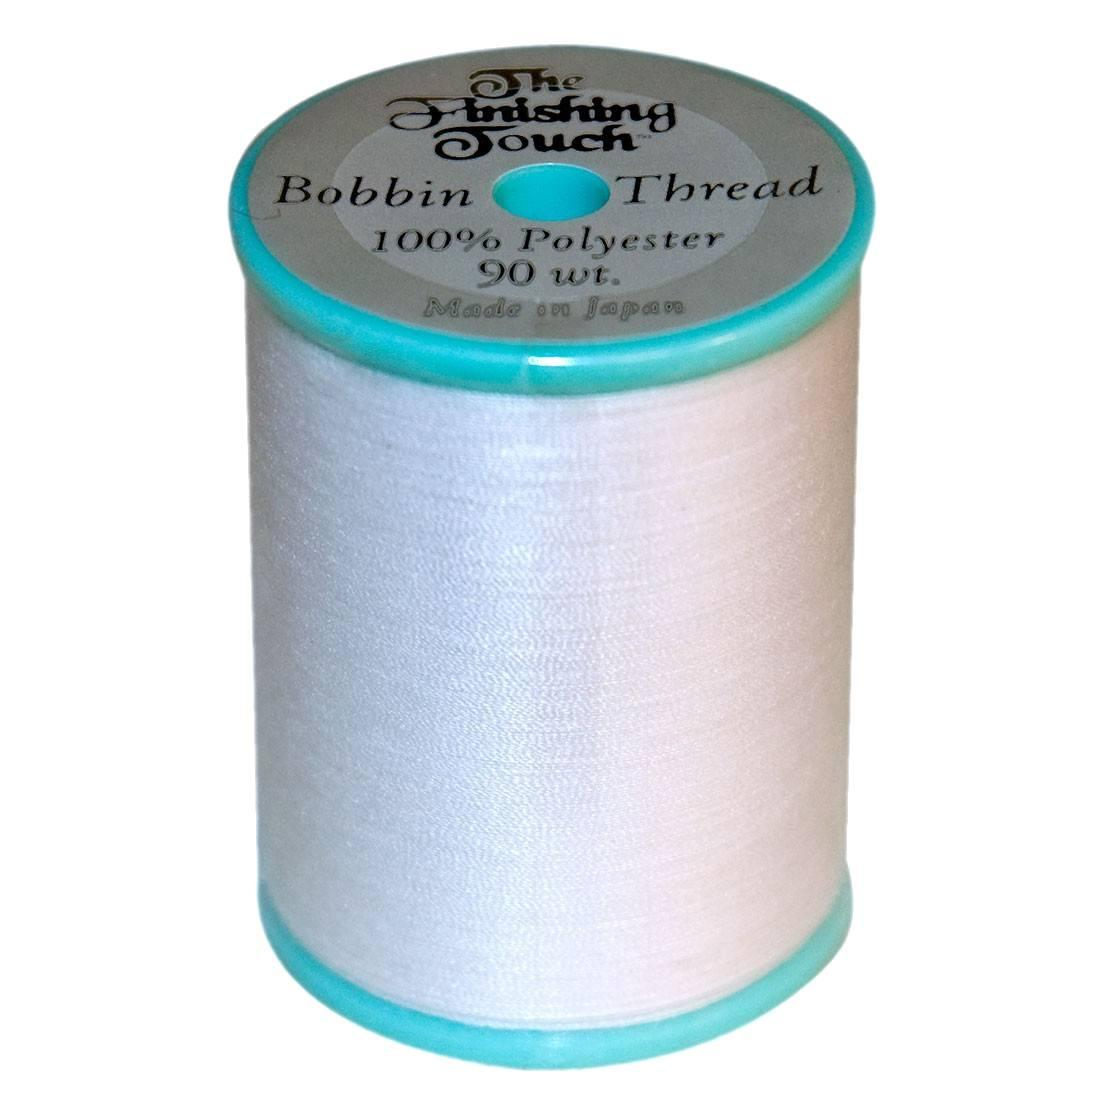 Finishing Touch Bobbin Thread - White (90wt)